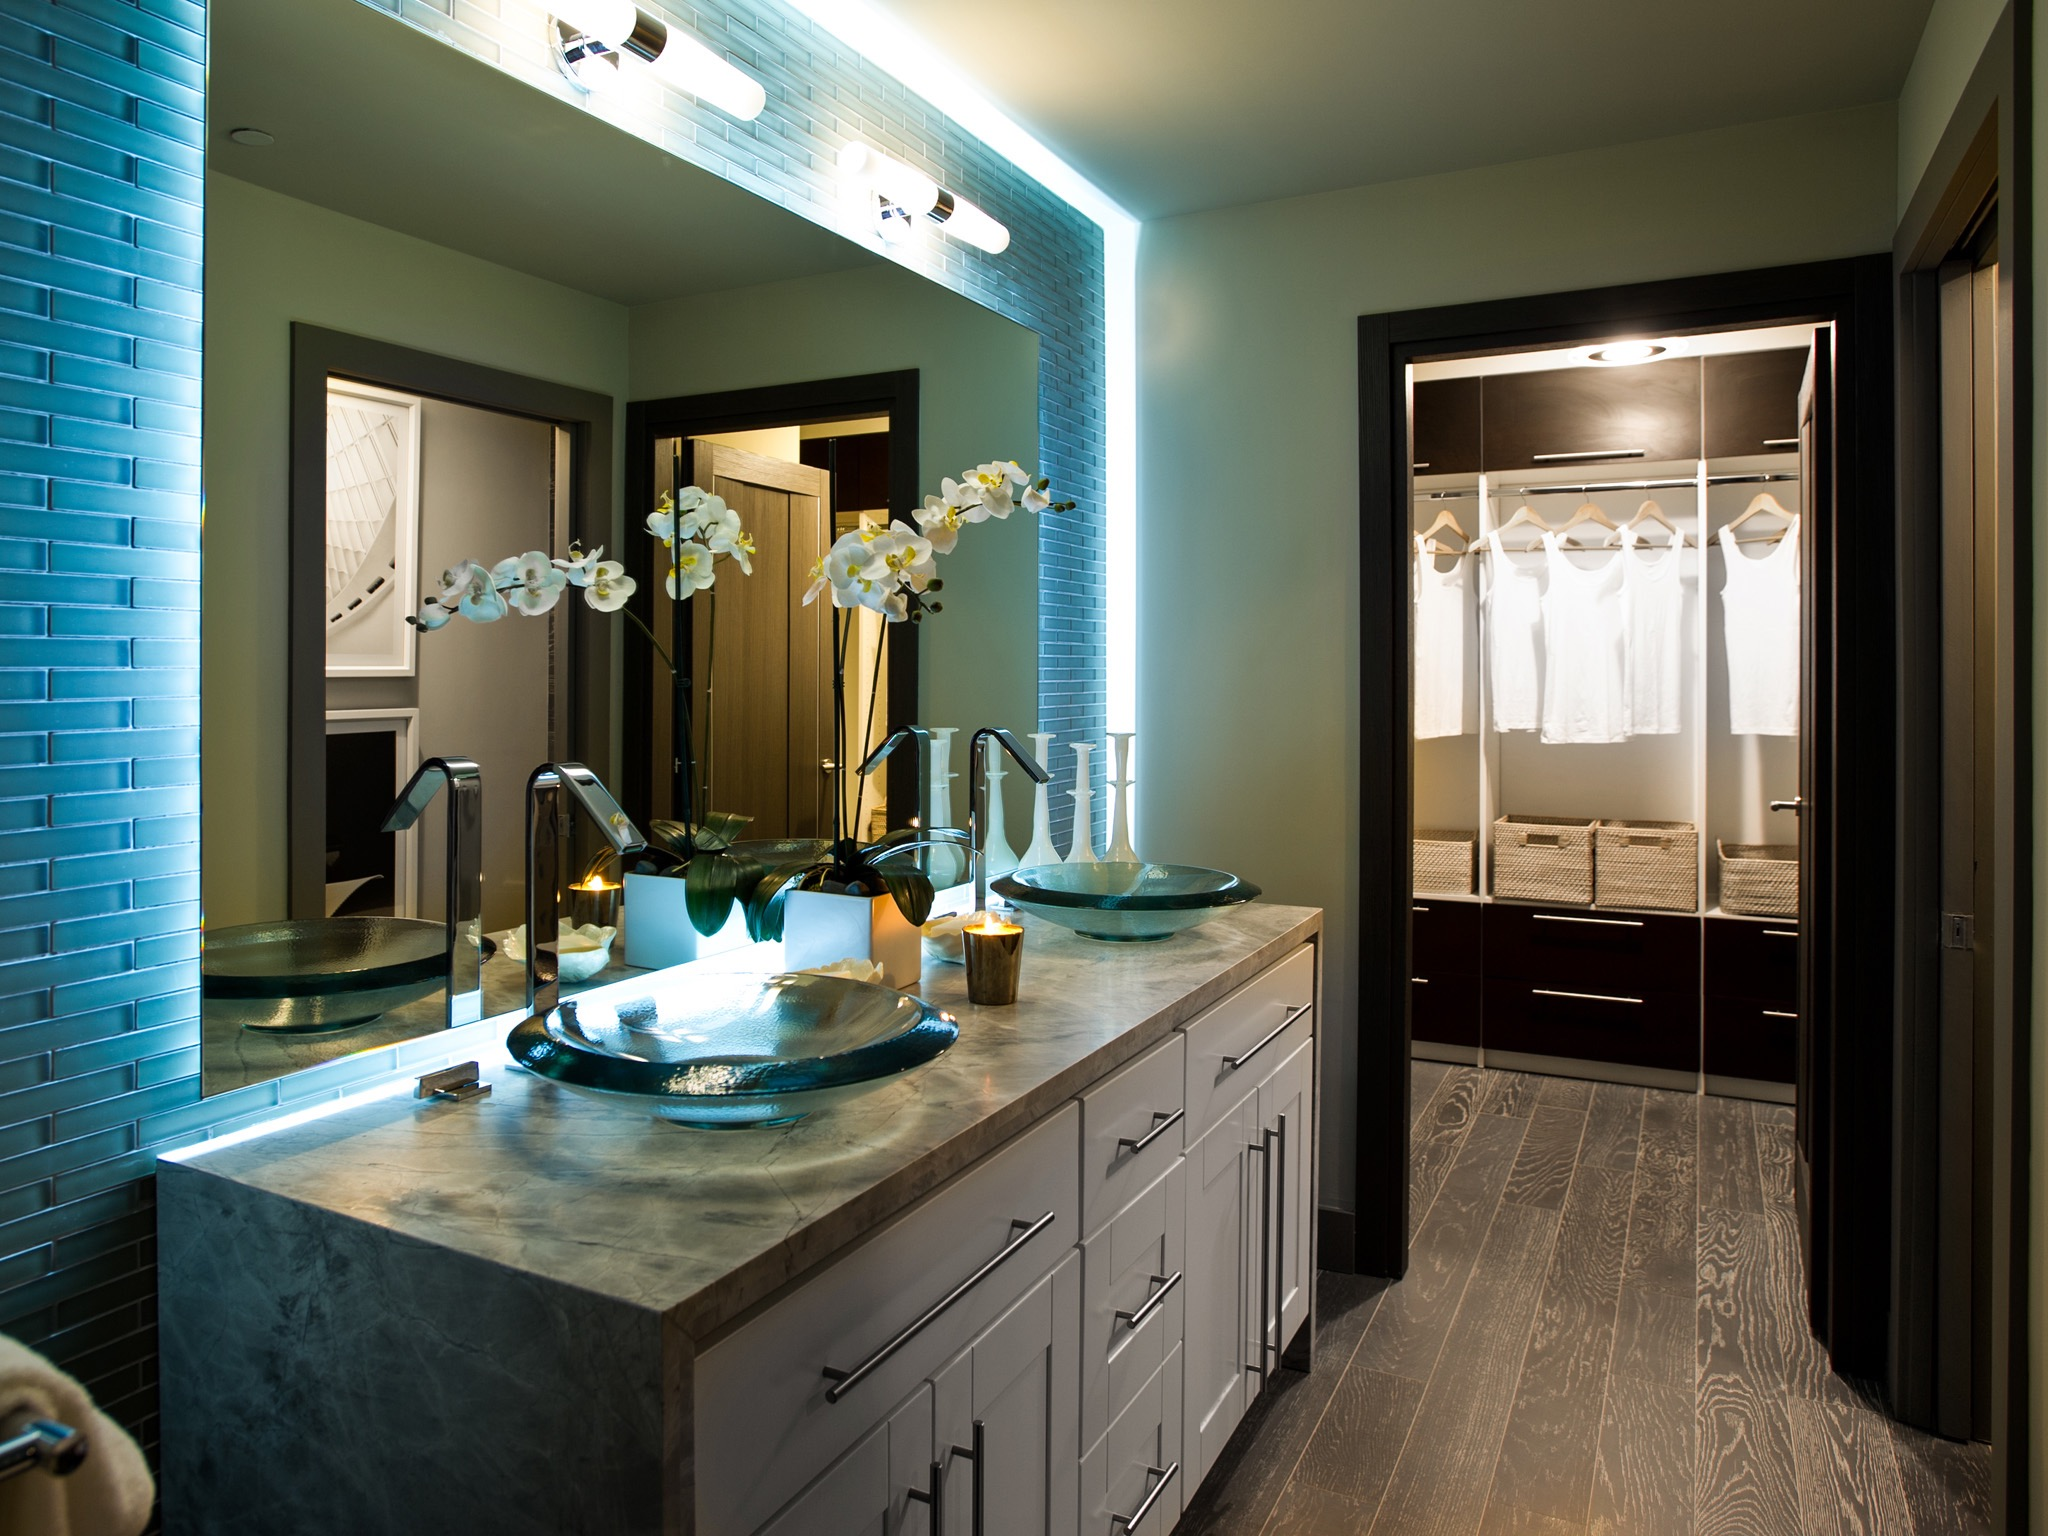 Modern Backlit Vanity Lighting For Modern Bathroom (Image 10 of 19)